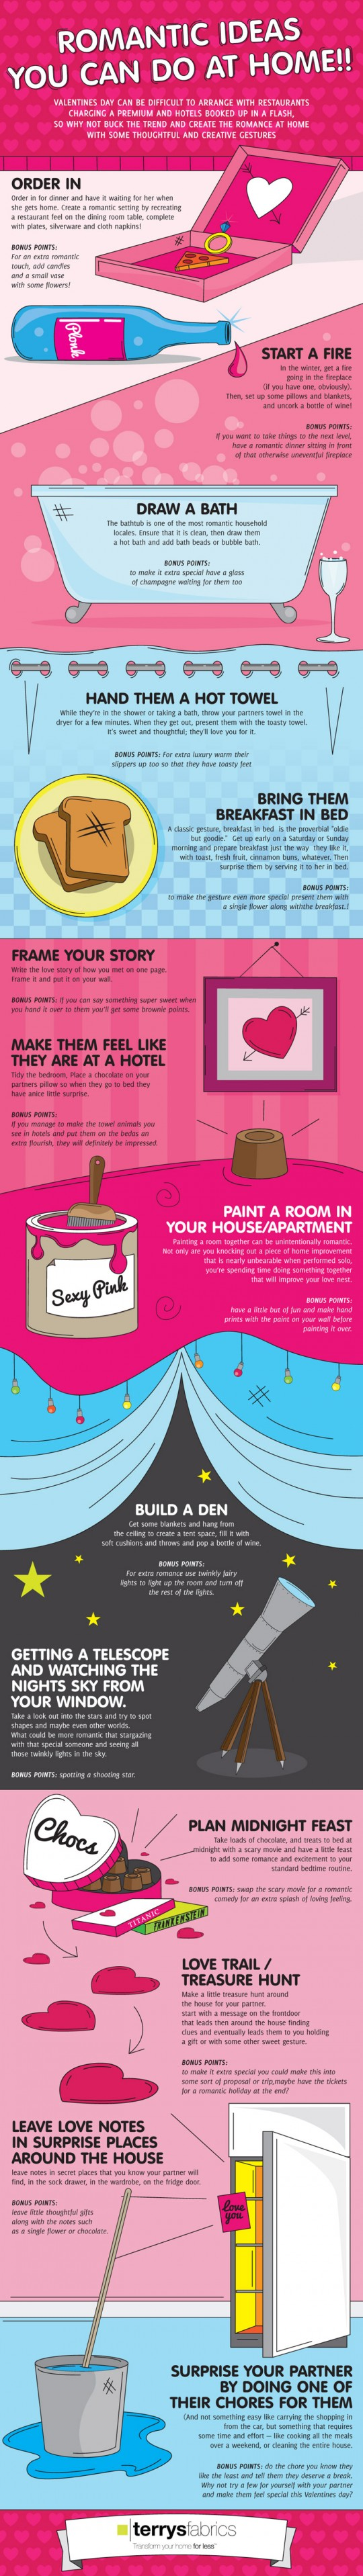 Romantic Ideas You Can Do At Home Infographic